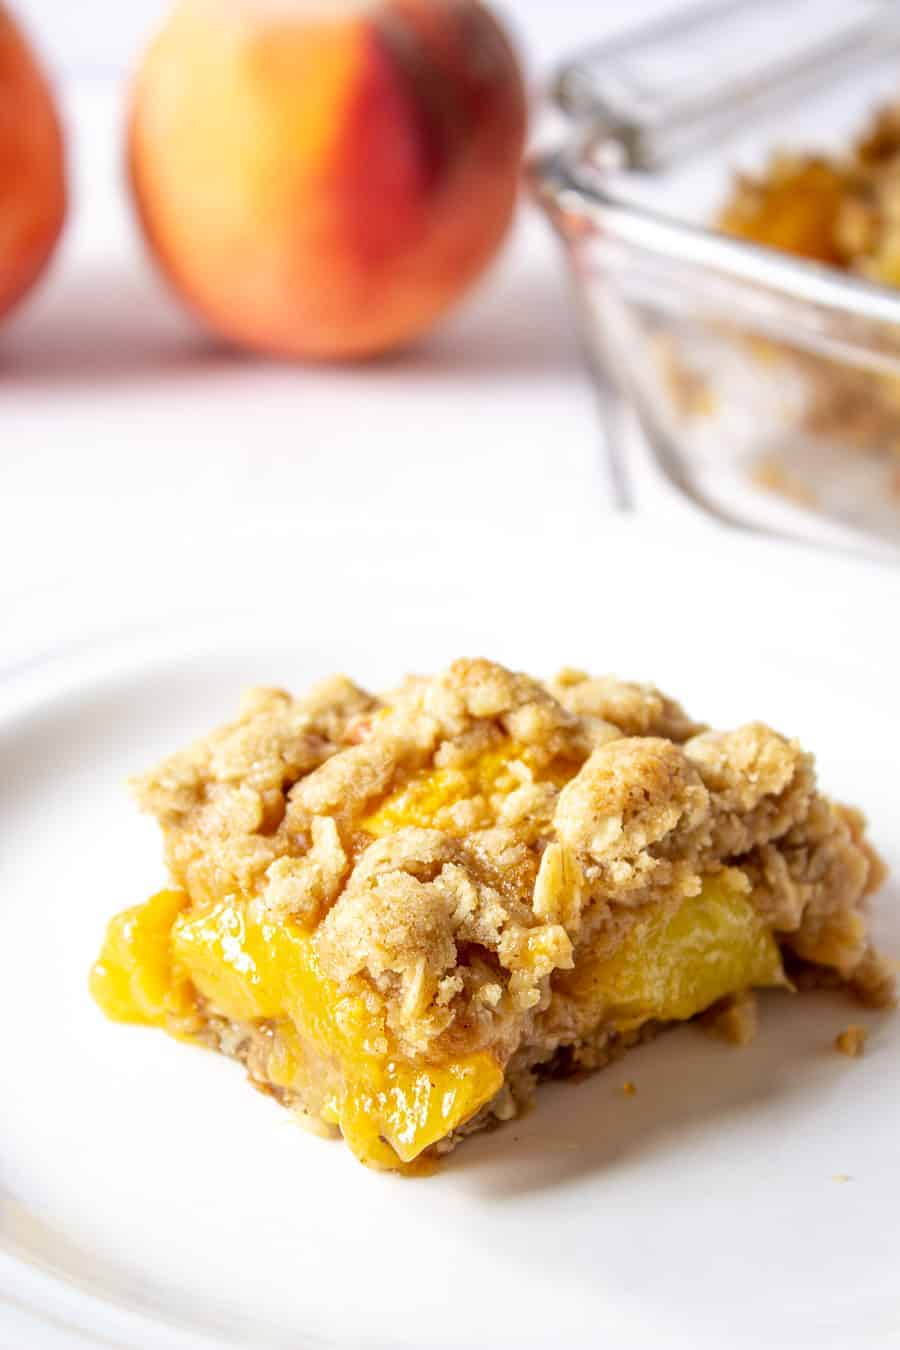 Peach bar topped with an oatmeal topping.